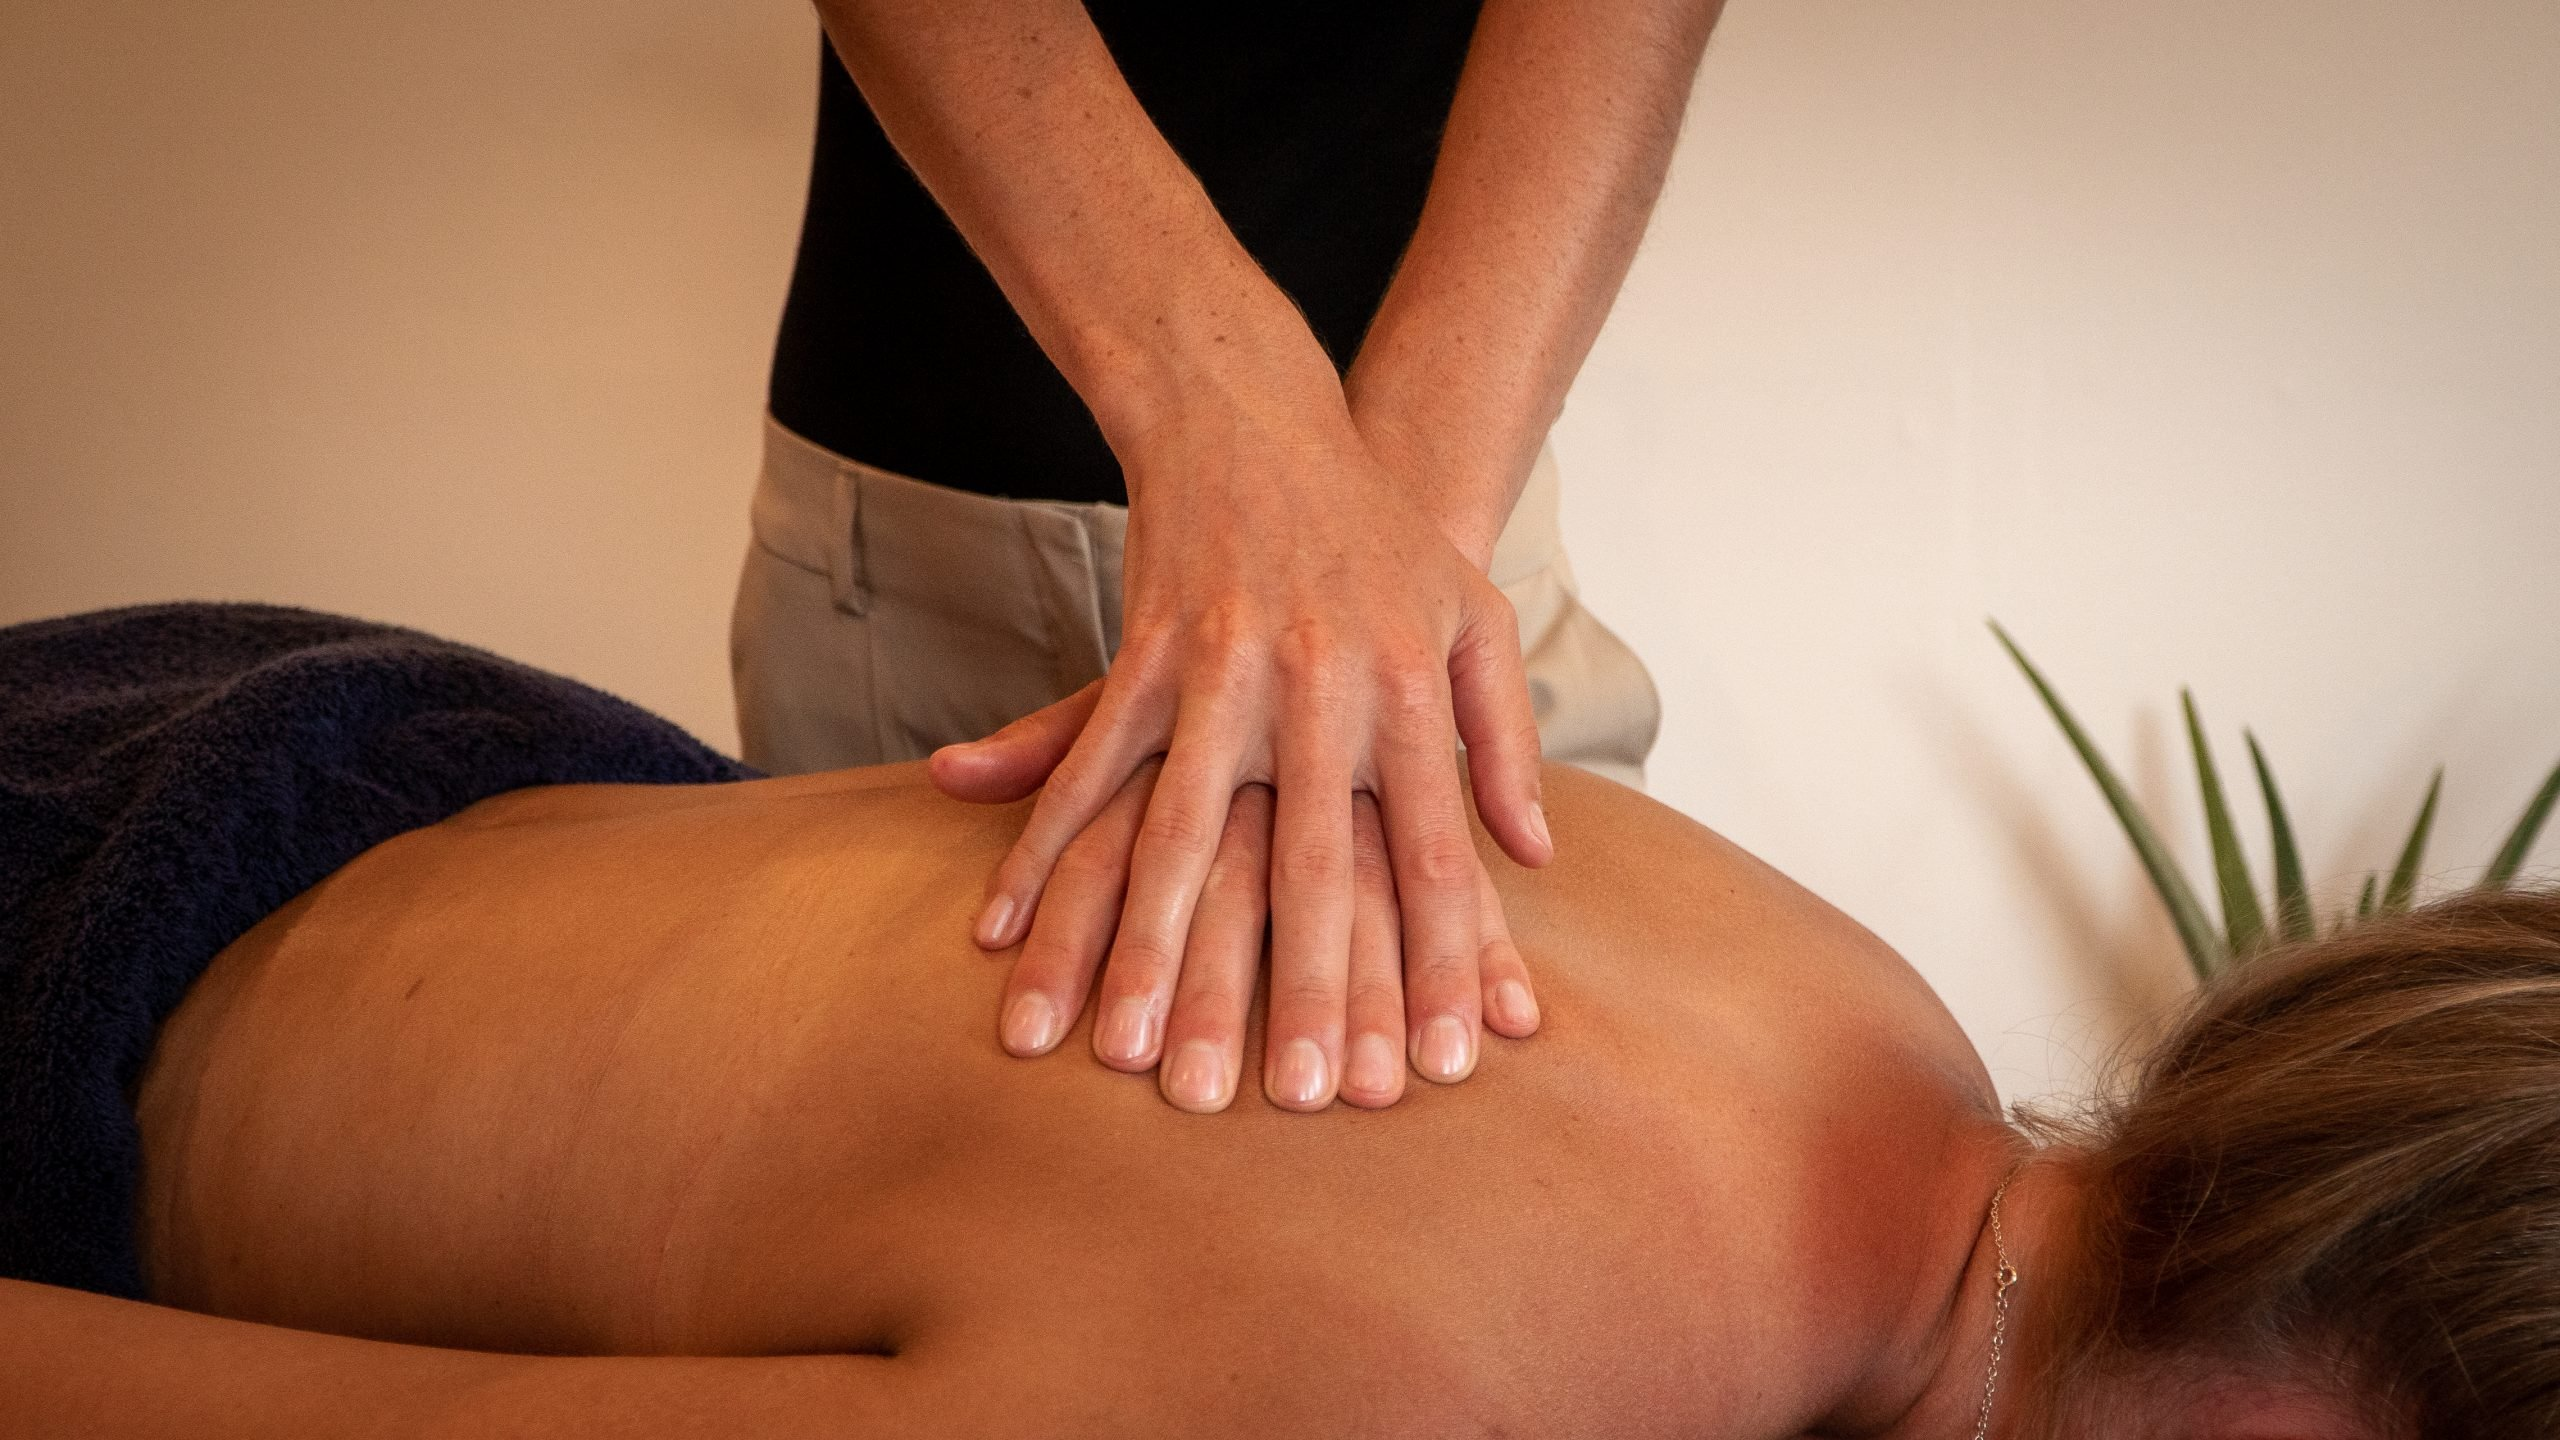 Deep Tissue Massage for the upper back and shoulders.